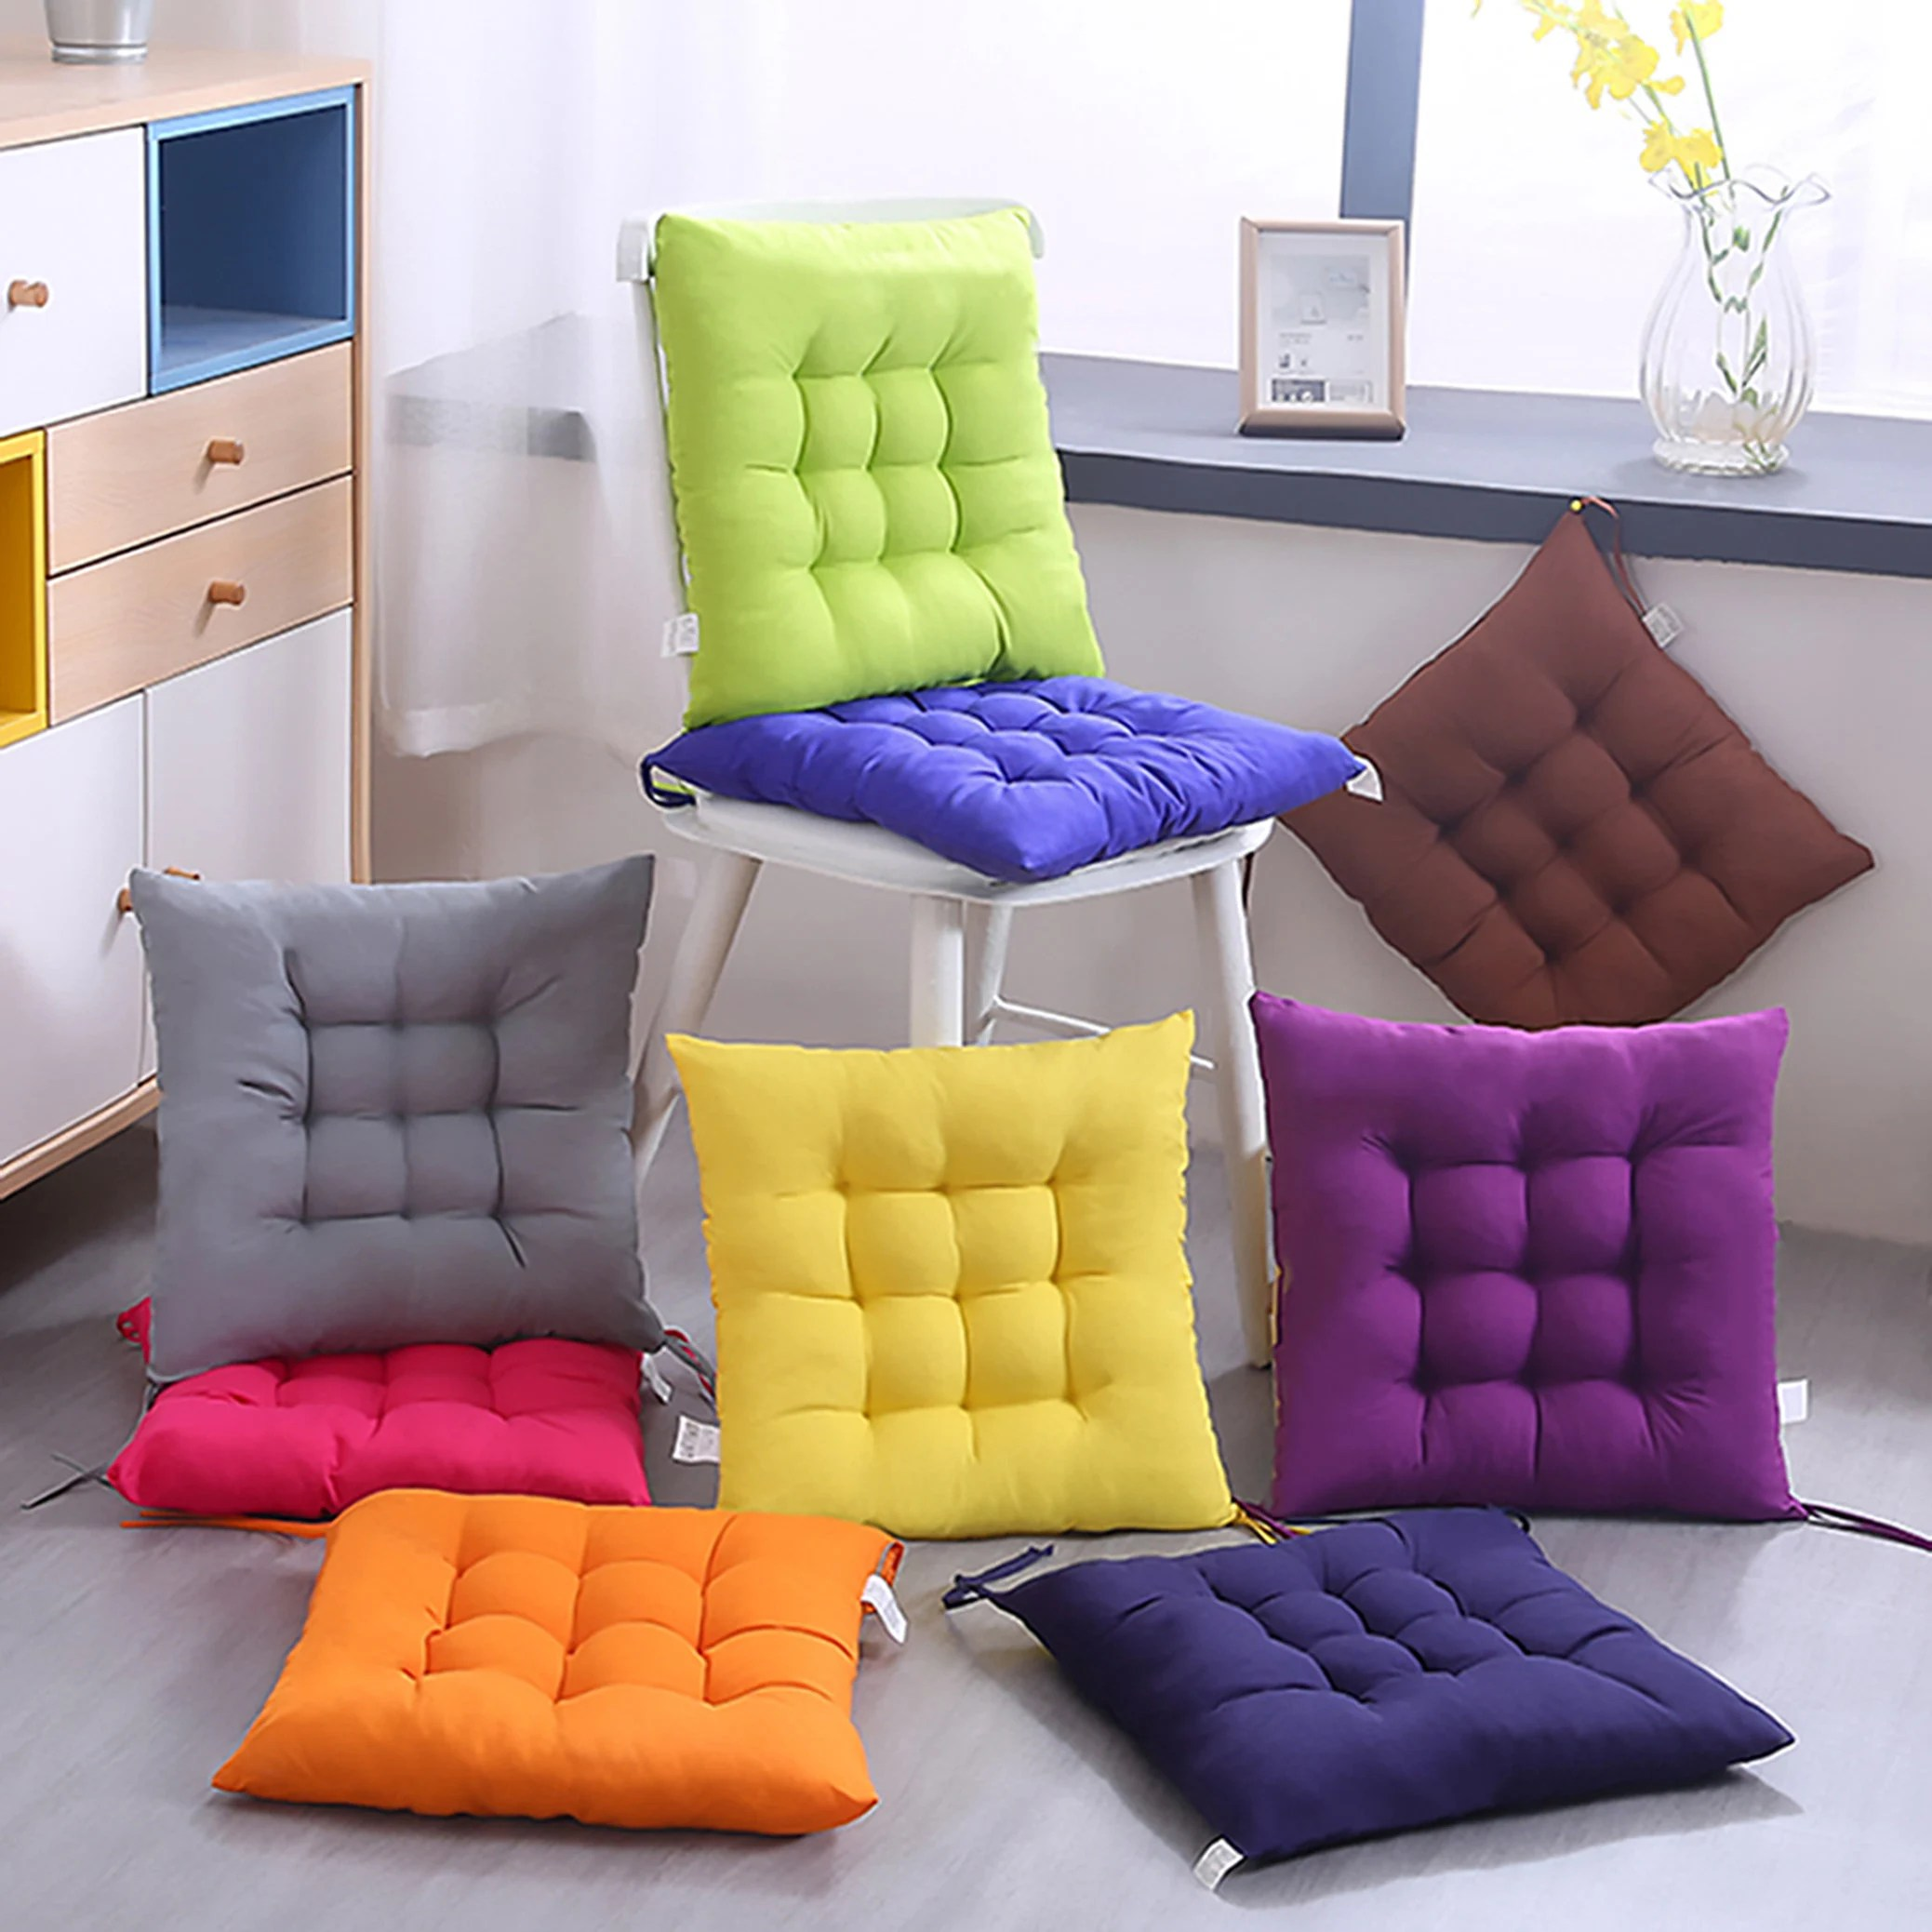 Dining Chair Cushions With Ties Kitchen Seat Pads Indoor Chair Pads Office Patio Bistro Rocking Wicker Pillows Tufted Thick Square